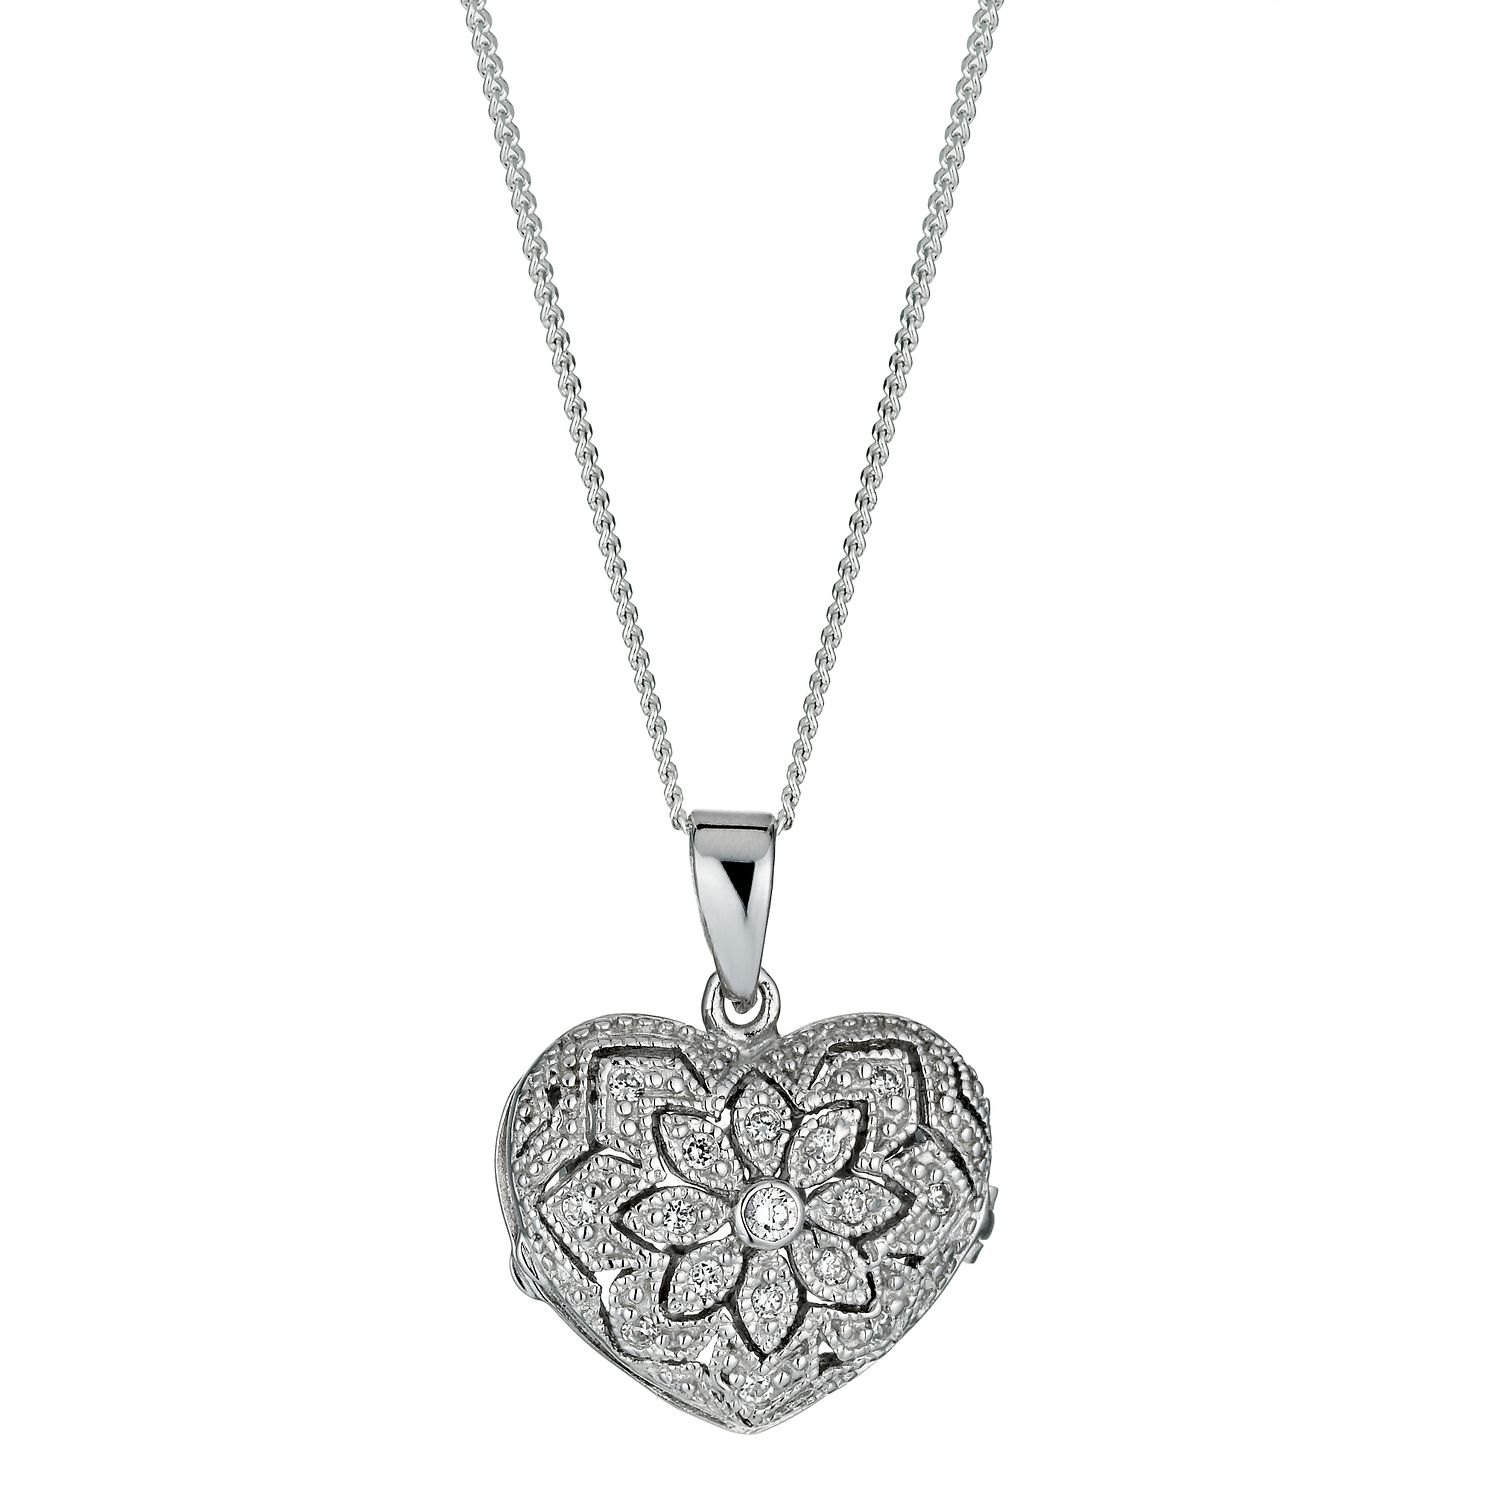 necklace sterling uniqjewelrydesigns engraved heart silver crystal lockets swarovski